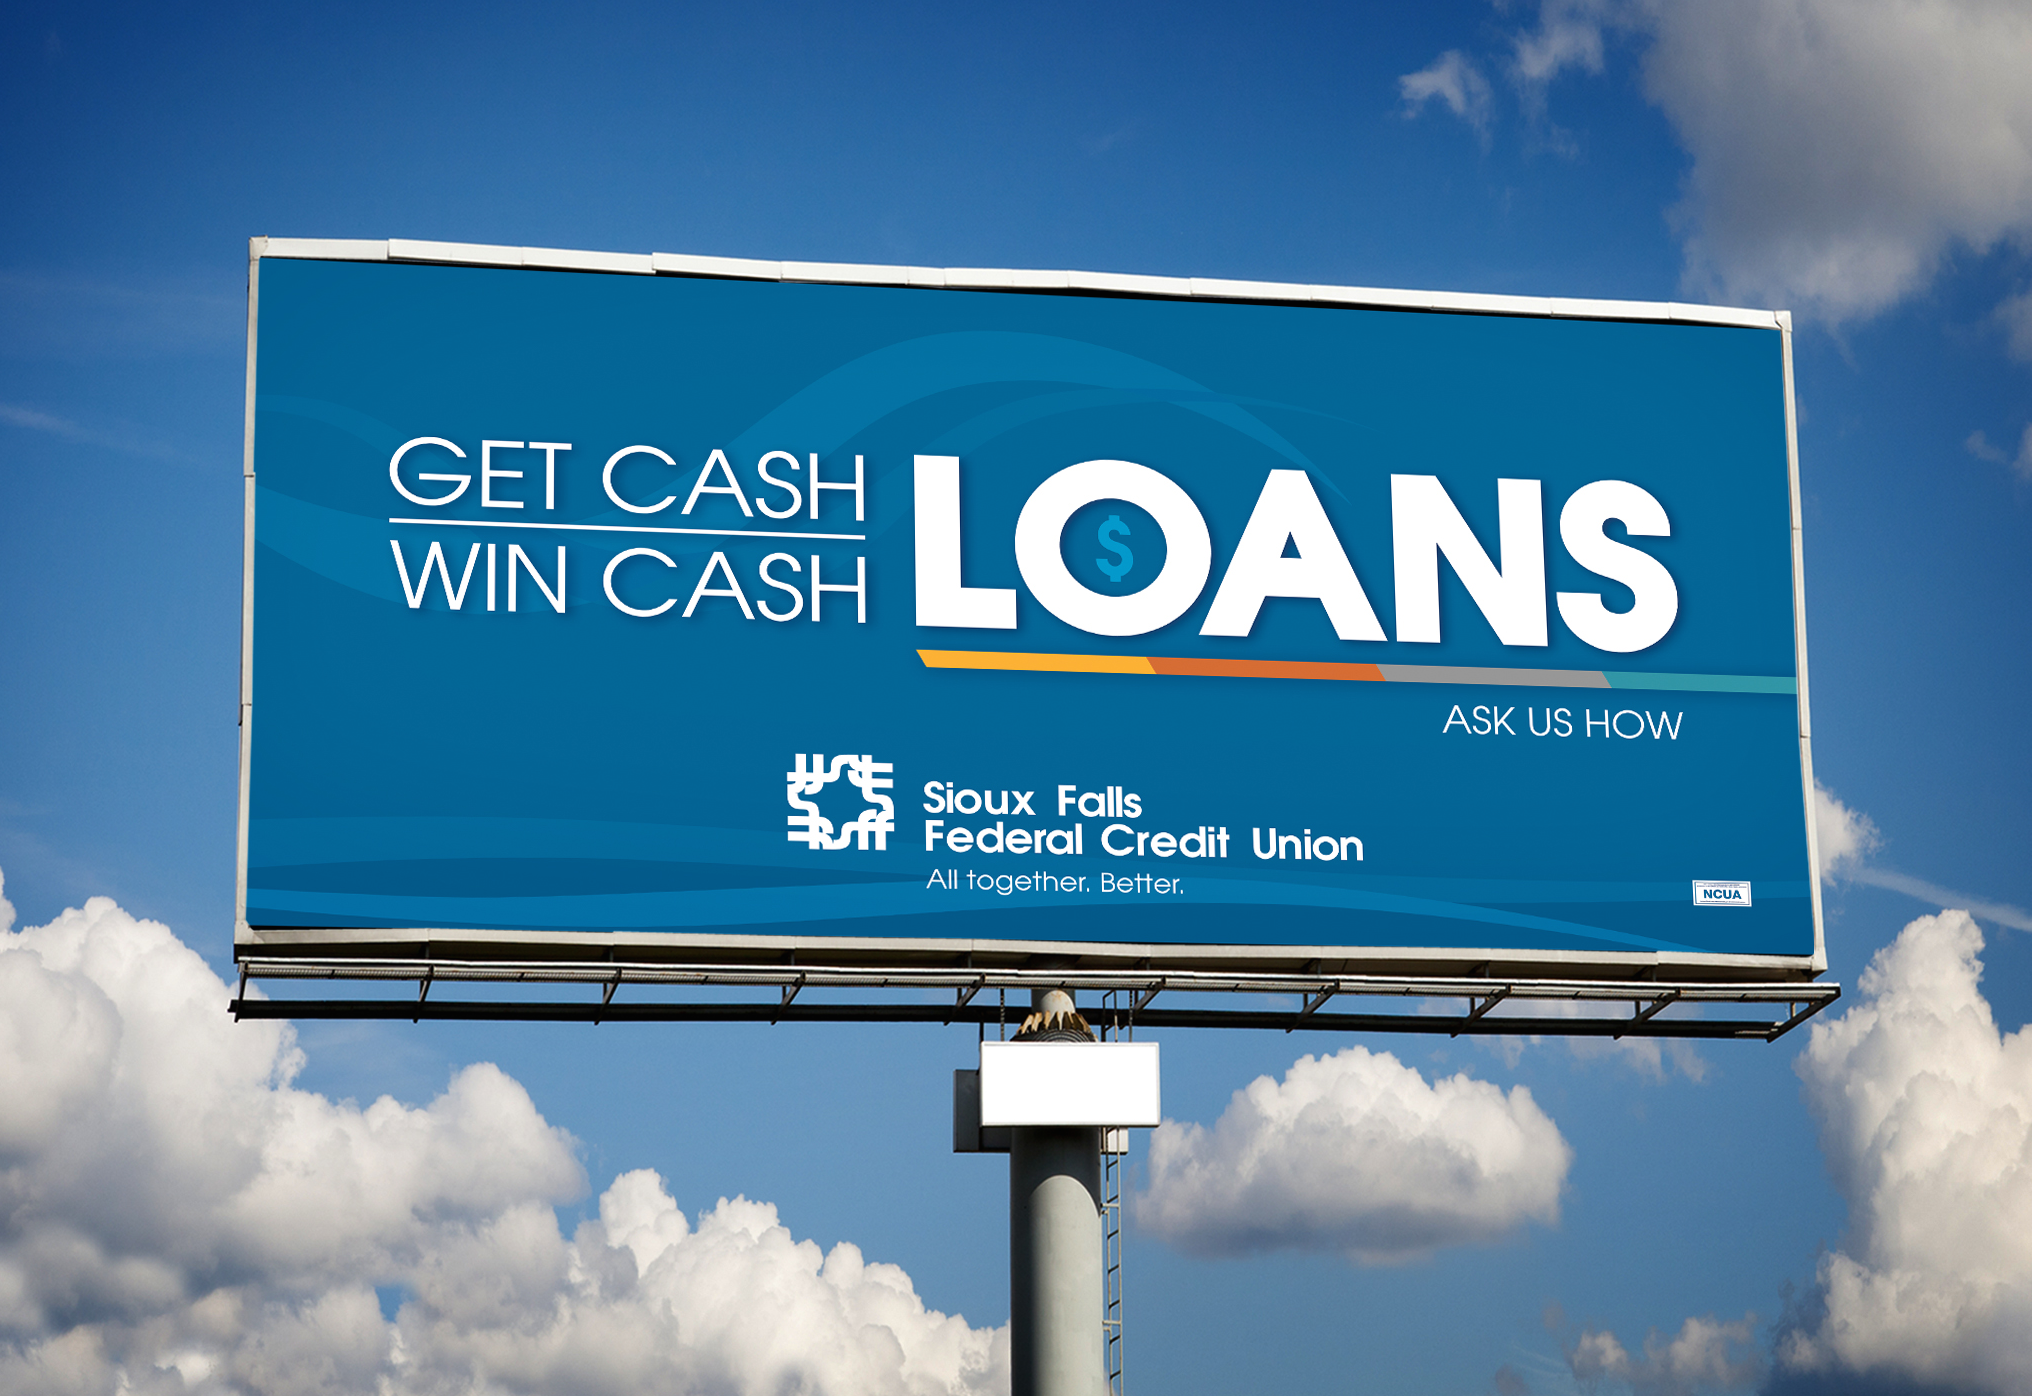 SFFCU_Billboards_GetCashWinCash.png